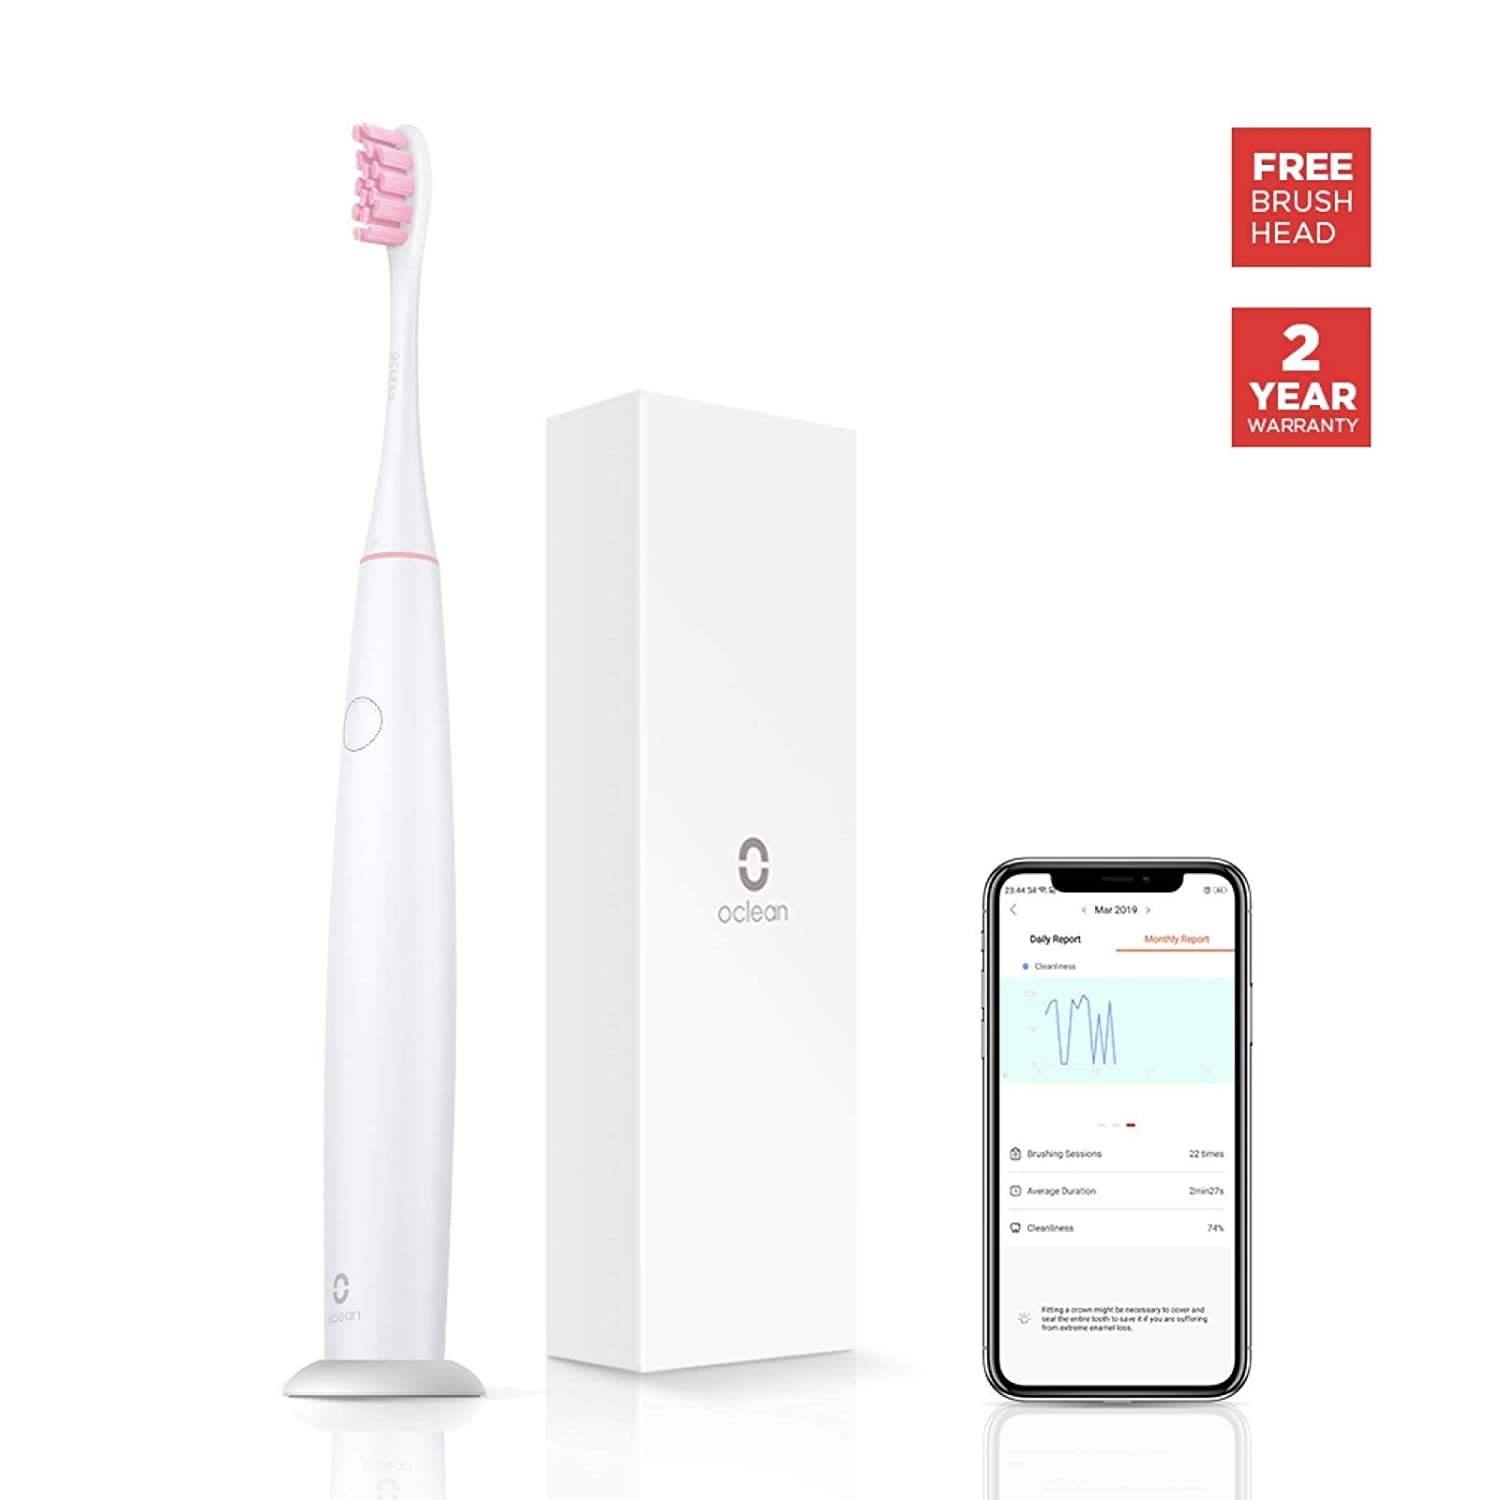 Oclean Air Smart Sonic Electric Toothbrush with Pressure Sensor, a Lifetime of Free Brush Heads, 2.5 Hour Quick Charge 30 Days Battery Life, 3 Brushing Modes, 2 Intensity Settings, Pink